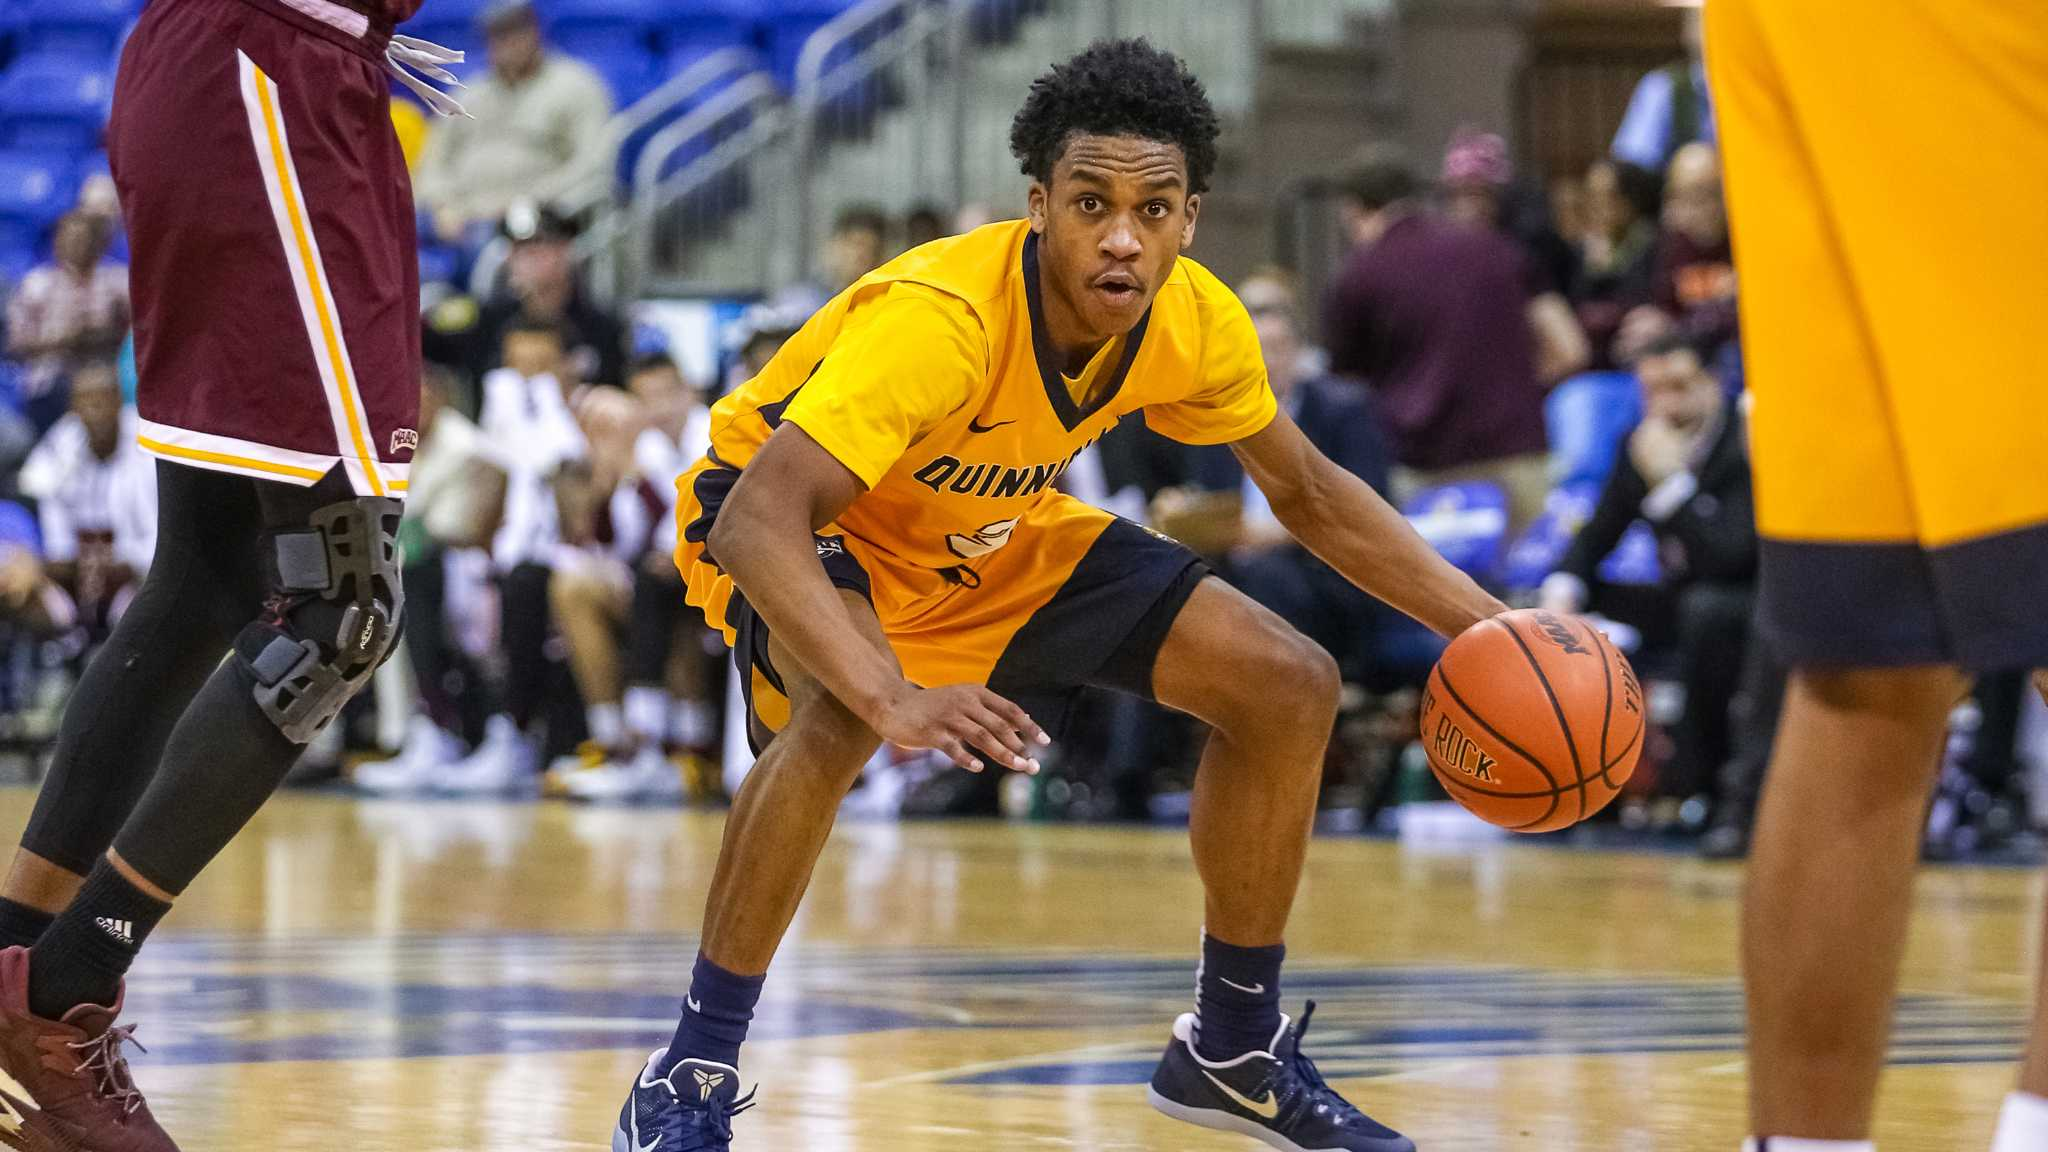 a look at the ncc mens basketball tournament Beyond buzzer-beaters and bracket-busters, the ncaa men's basketball tournament in big business and a national obsession here's a look at some of the numbers -- and dollars -- surrounding march.